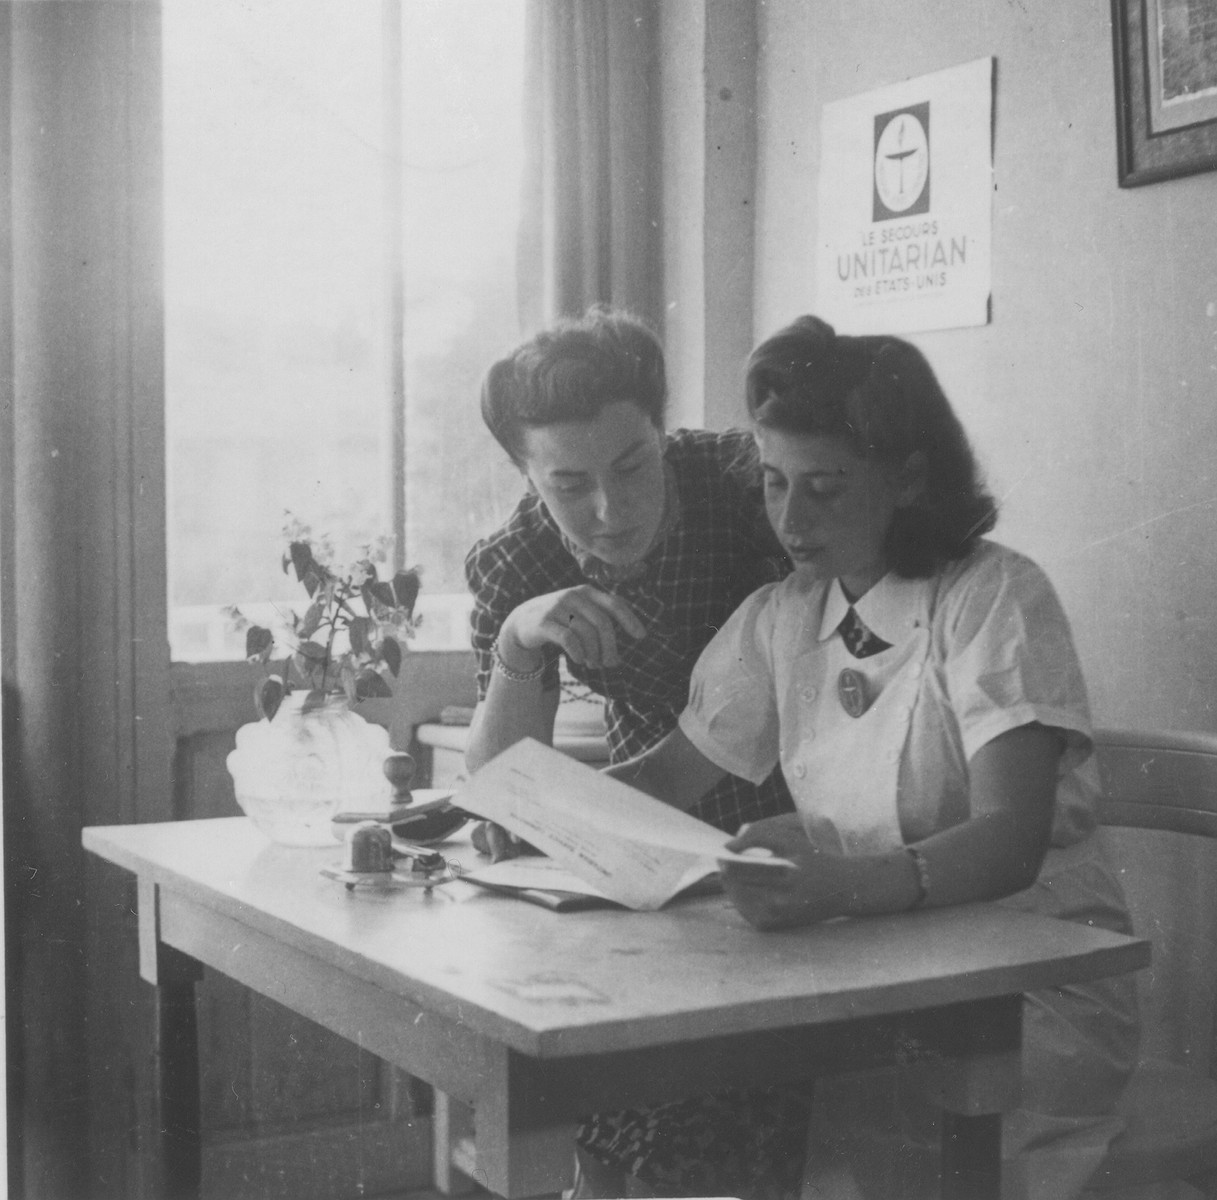 Margot Stein and Mrs. Zimmer, the wife of a physician of the Unitarian Service Committee, examine a document in their office at the Hotel Bompard internment camp.